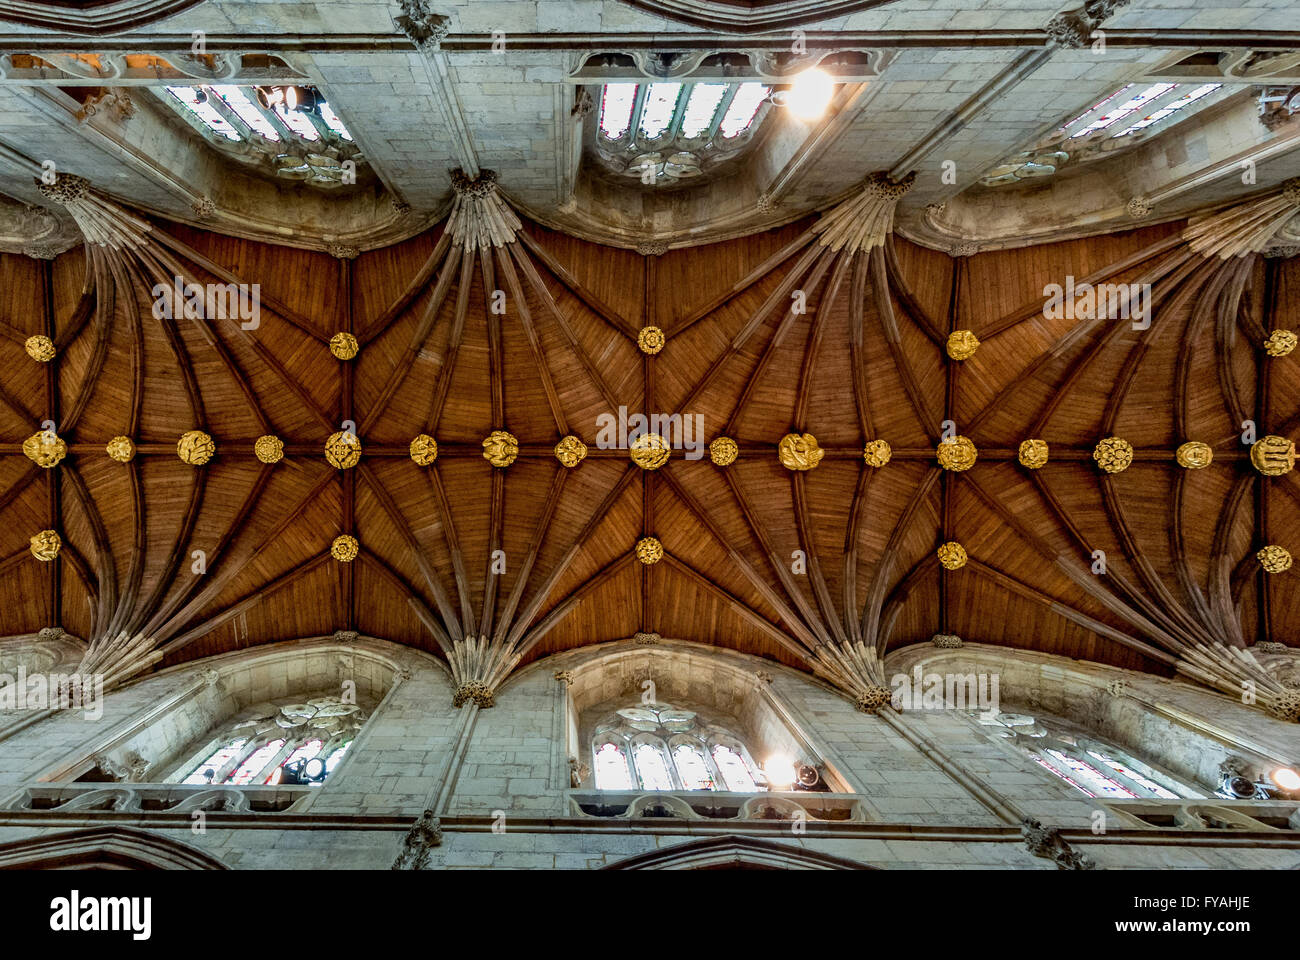 Ceiling of Selby Abbey - Stock Image